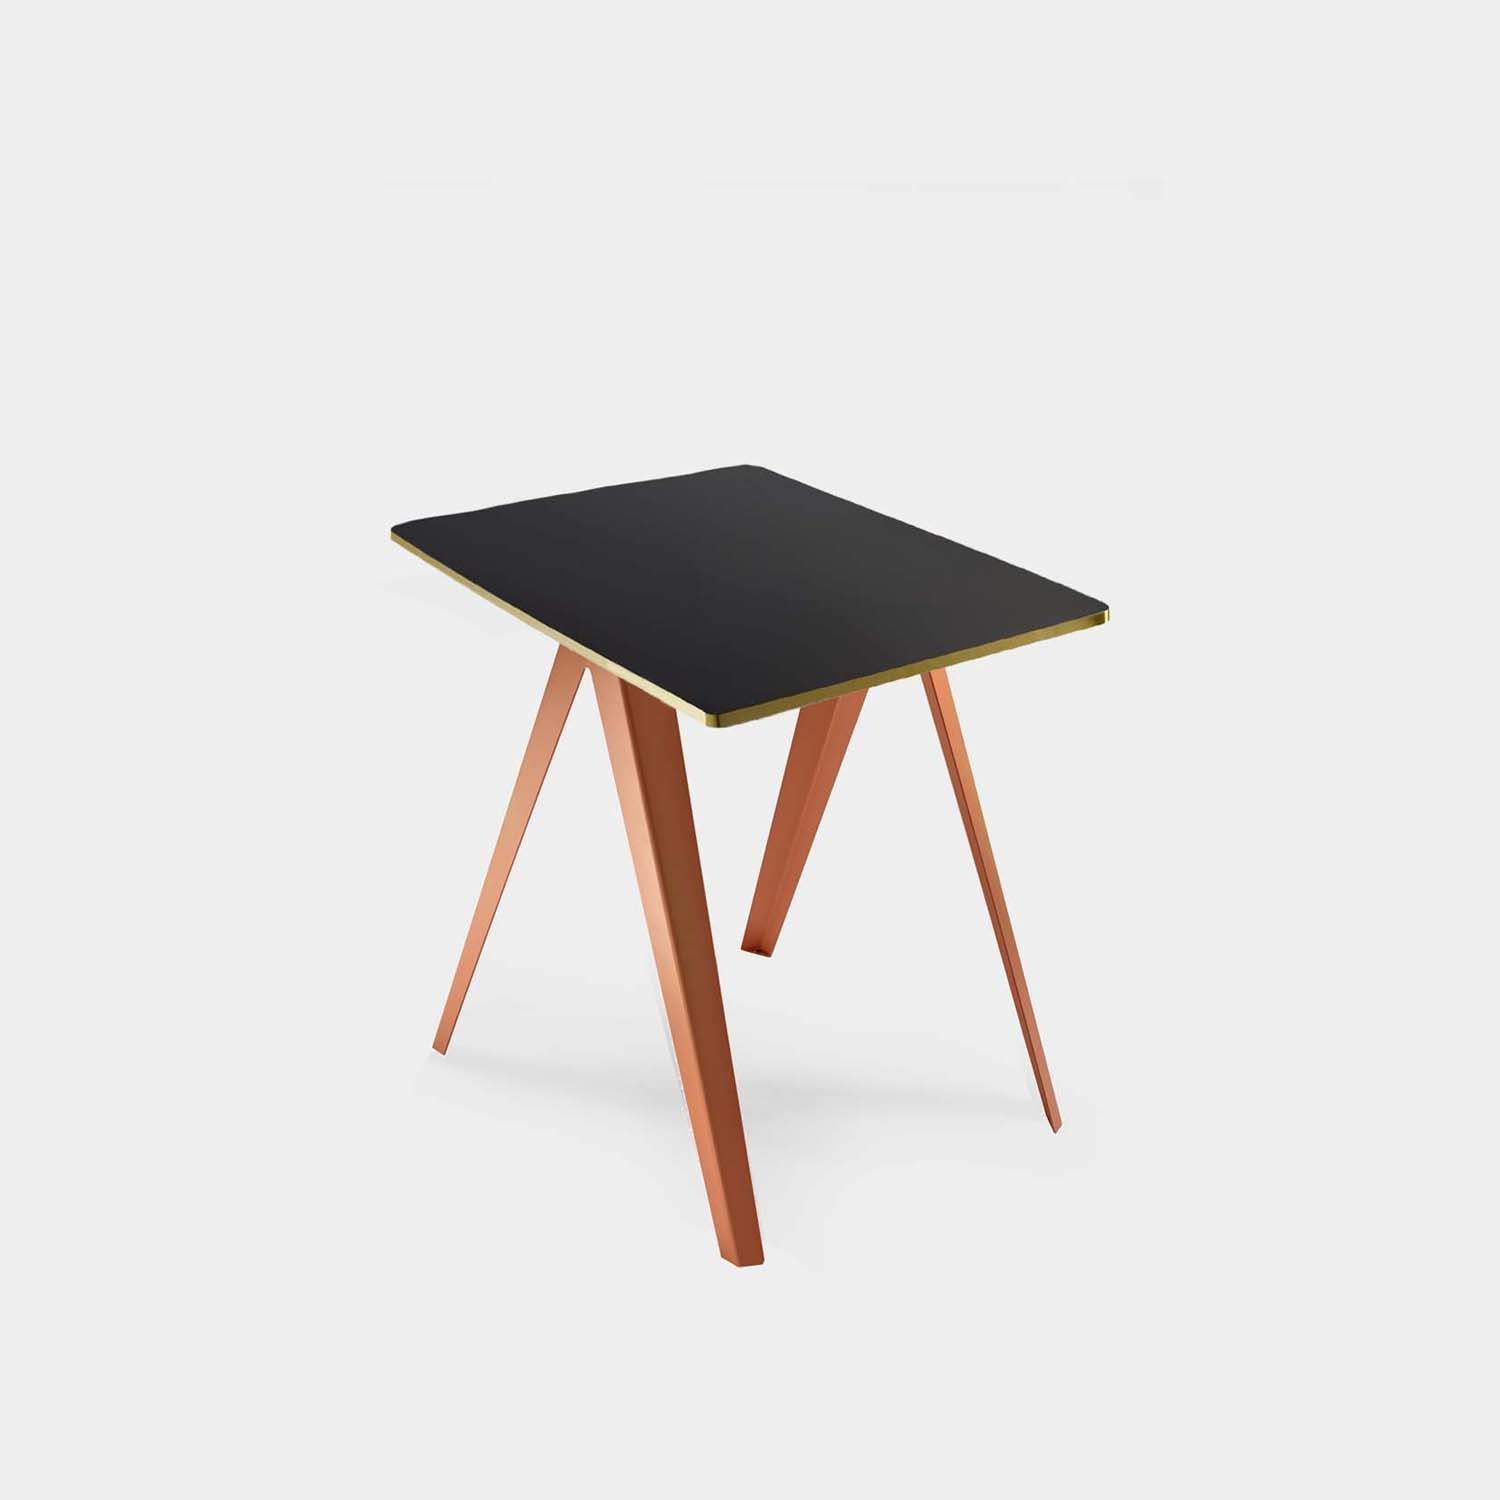 Sanba Table, Black/Gold Top, Pink Structure